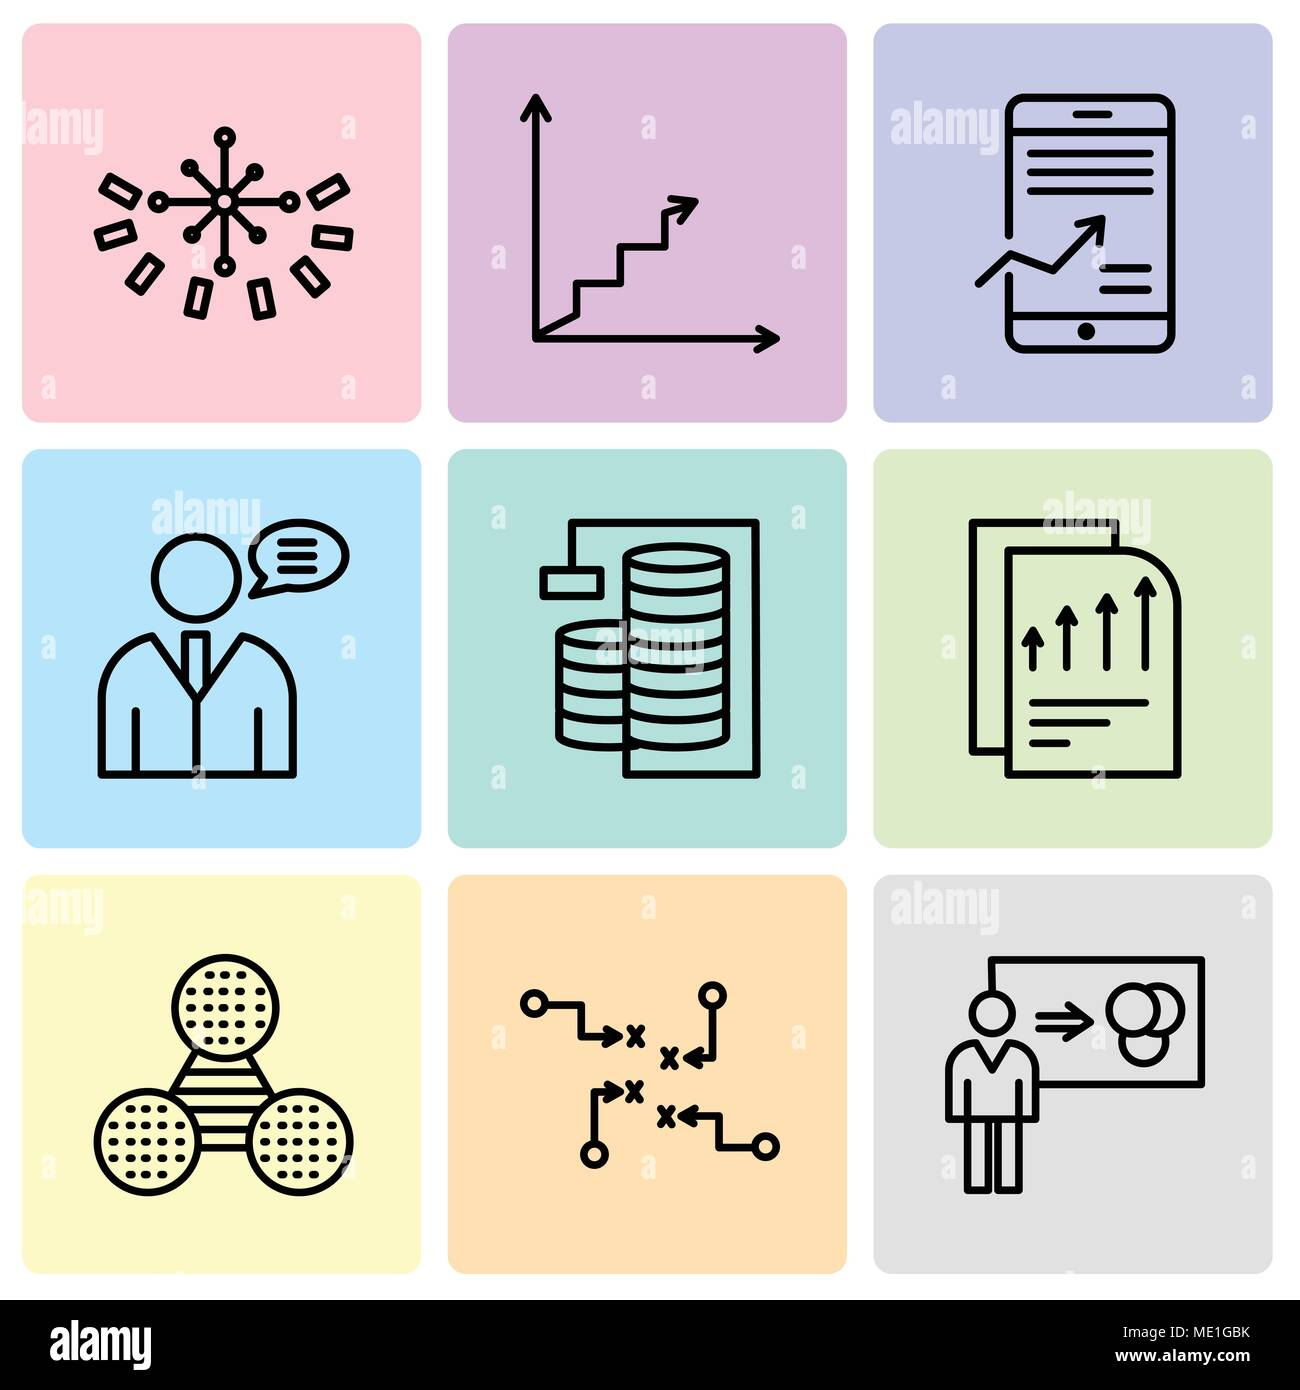 Set Of 9 simple editable icons such as Person explaining data, Strategy sketch, Pie graphic comparison, Bars chart page, Database Analysis, User data  - Stock Image